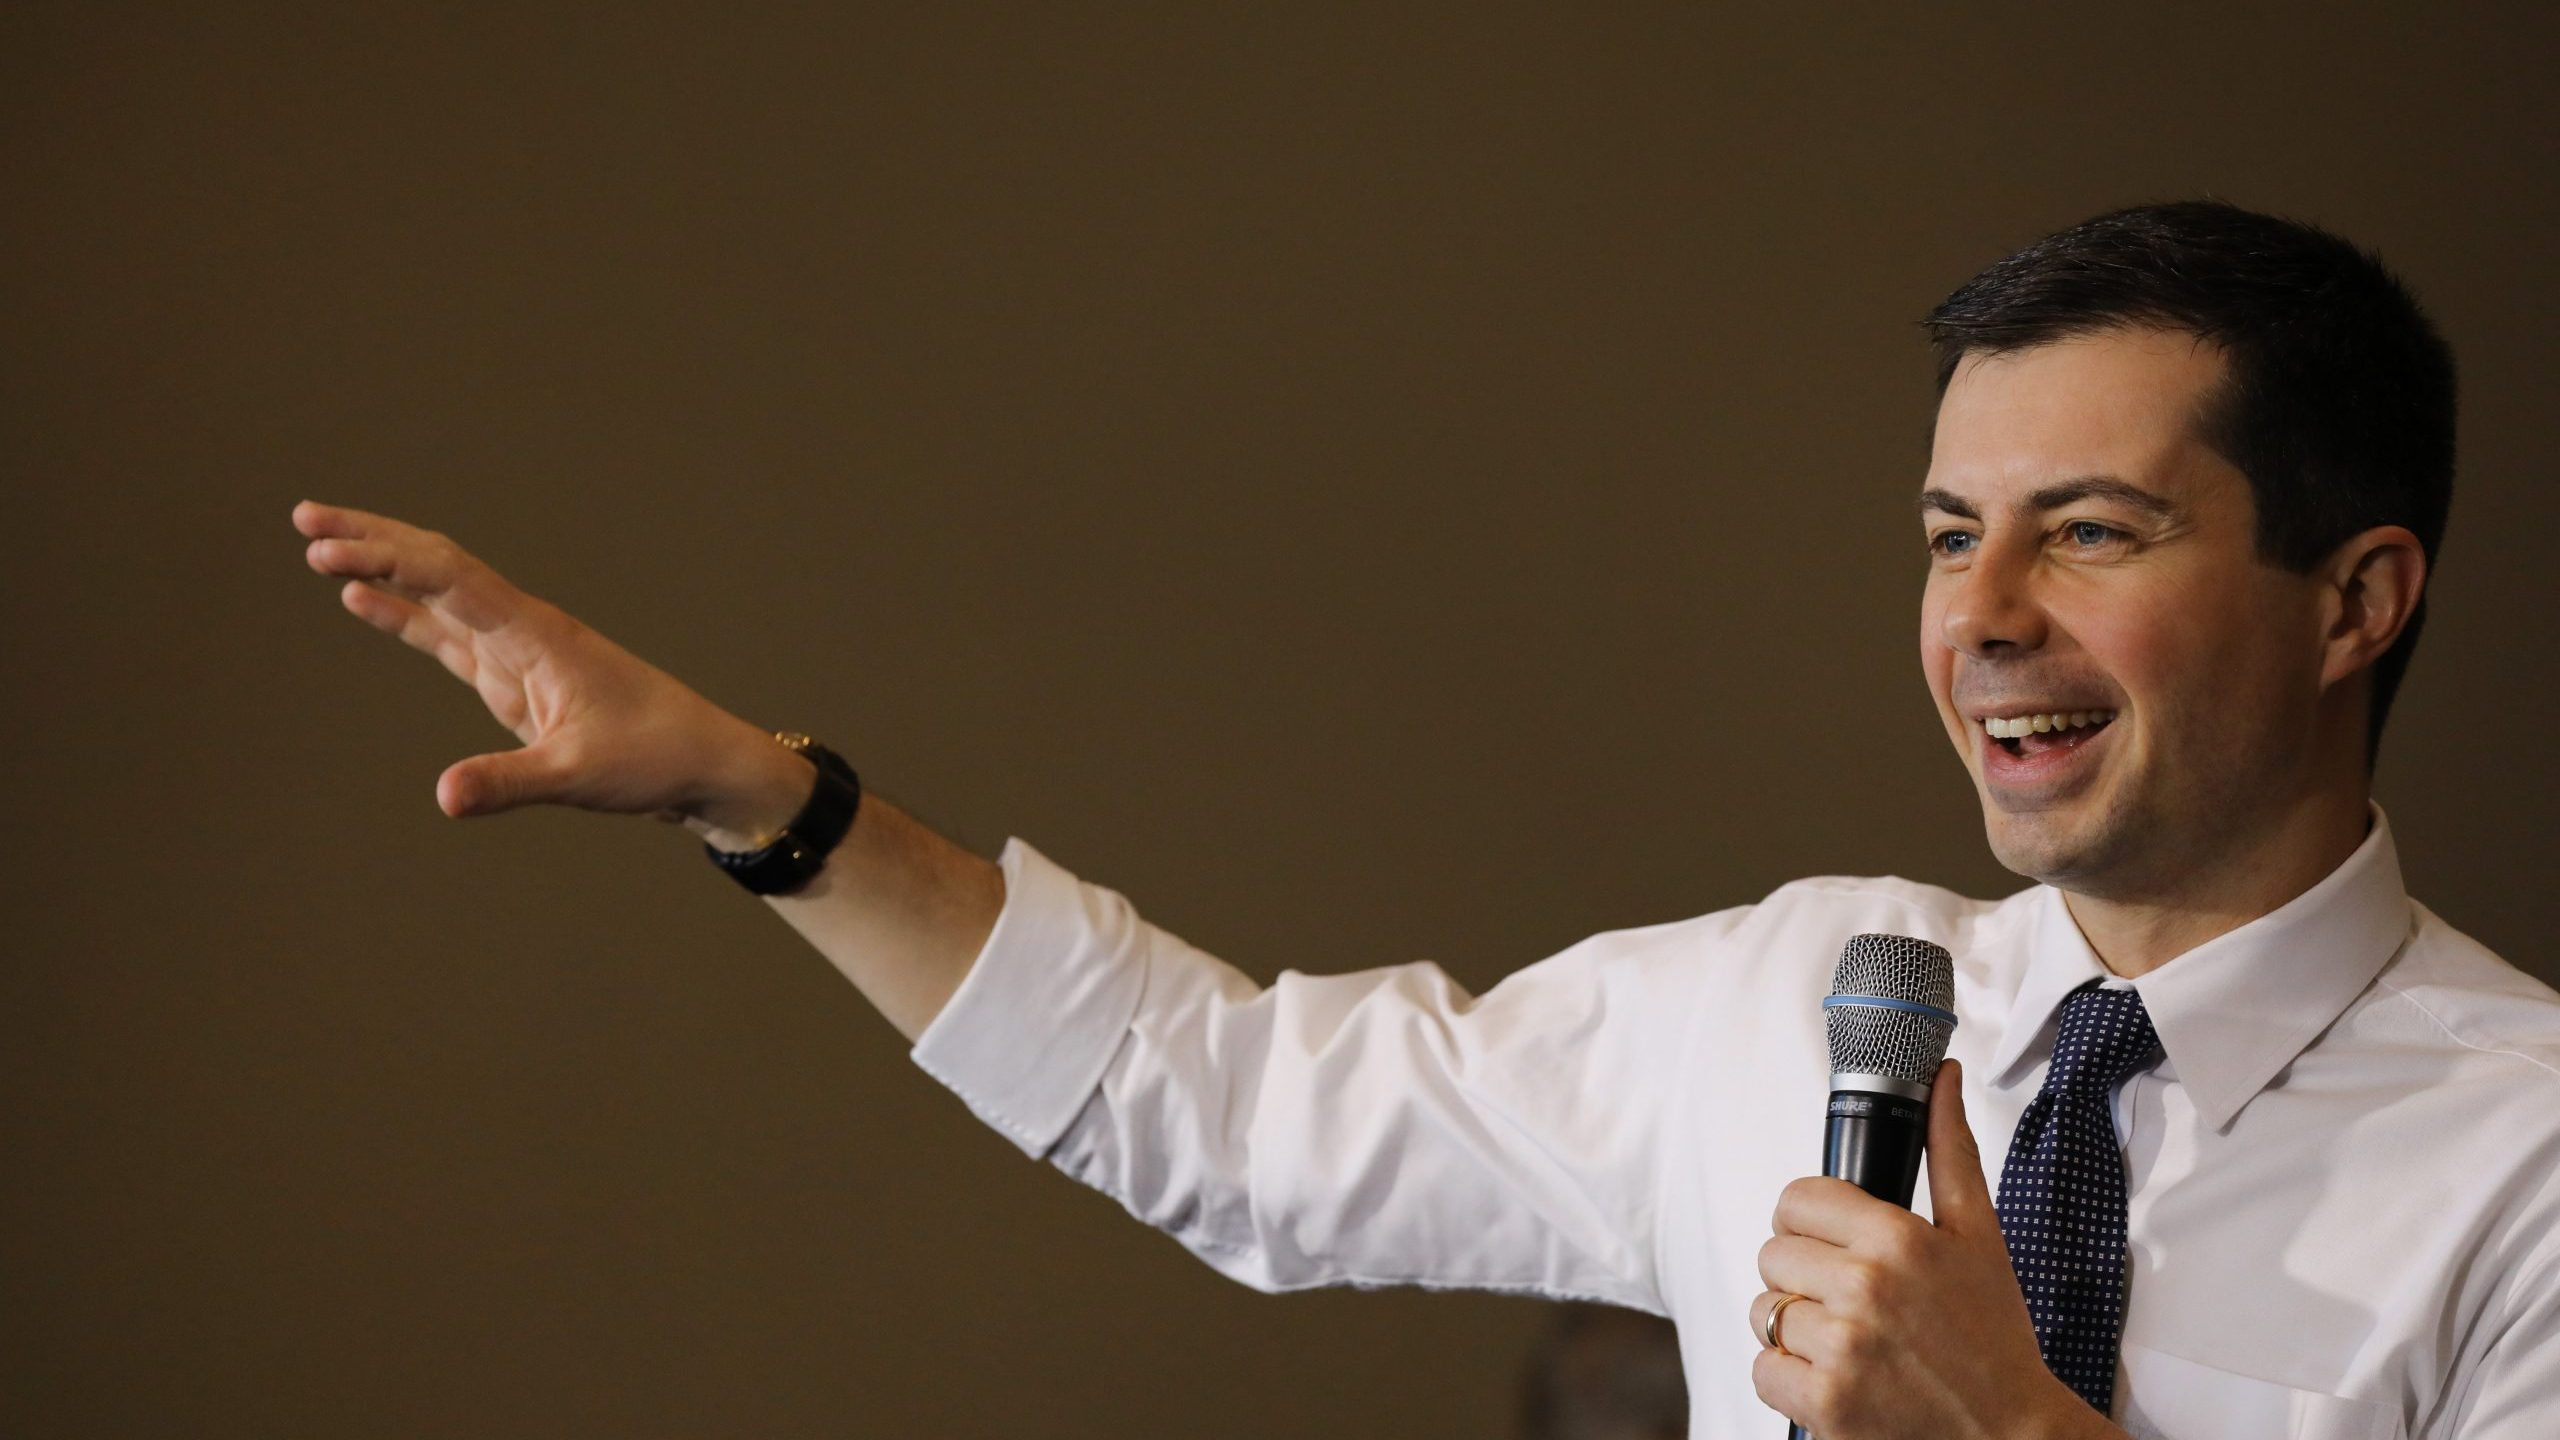 Democratic presidential candidate Pete Buttigieg makes a campaign stop at the Ed and Betty Wilcox Performing Arts Center on Jan. 16, 2020, in Algona, Iowa. (Credit: Spencer Platt/Getty Images)